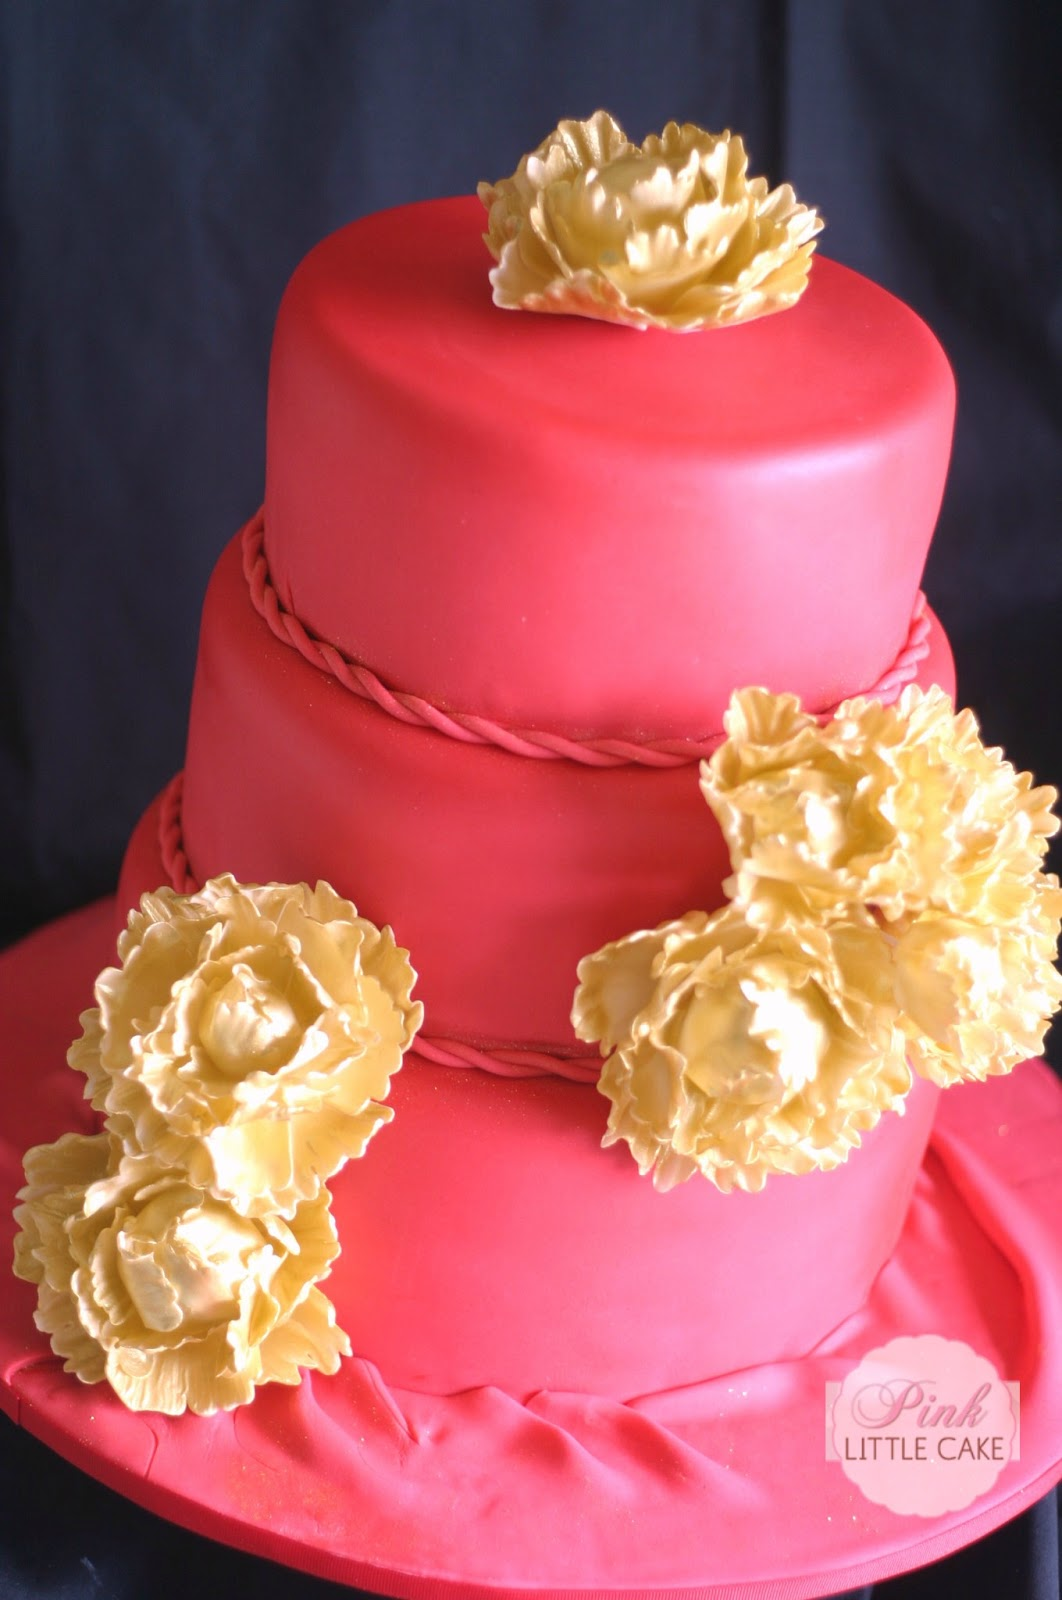 Pink Little Cake Red Birthday Cake With Gold Peonies